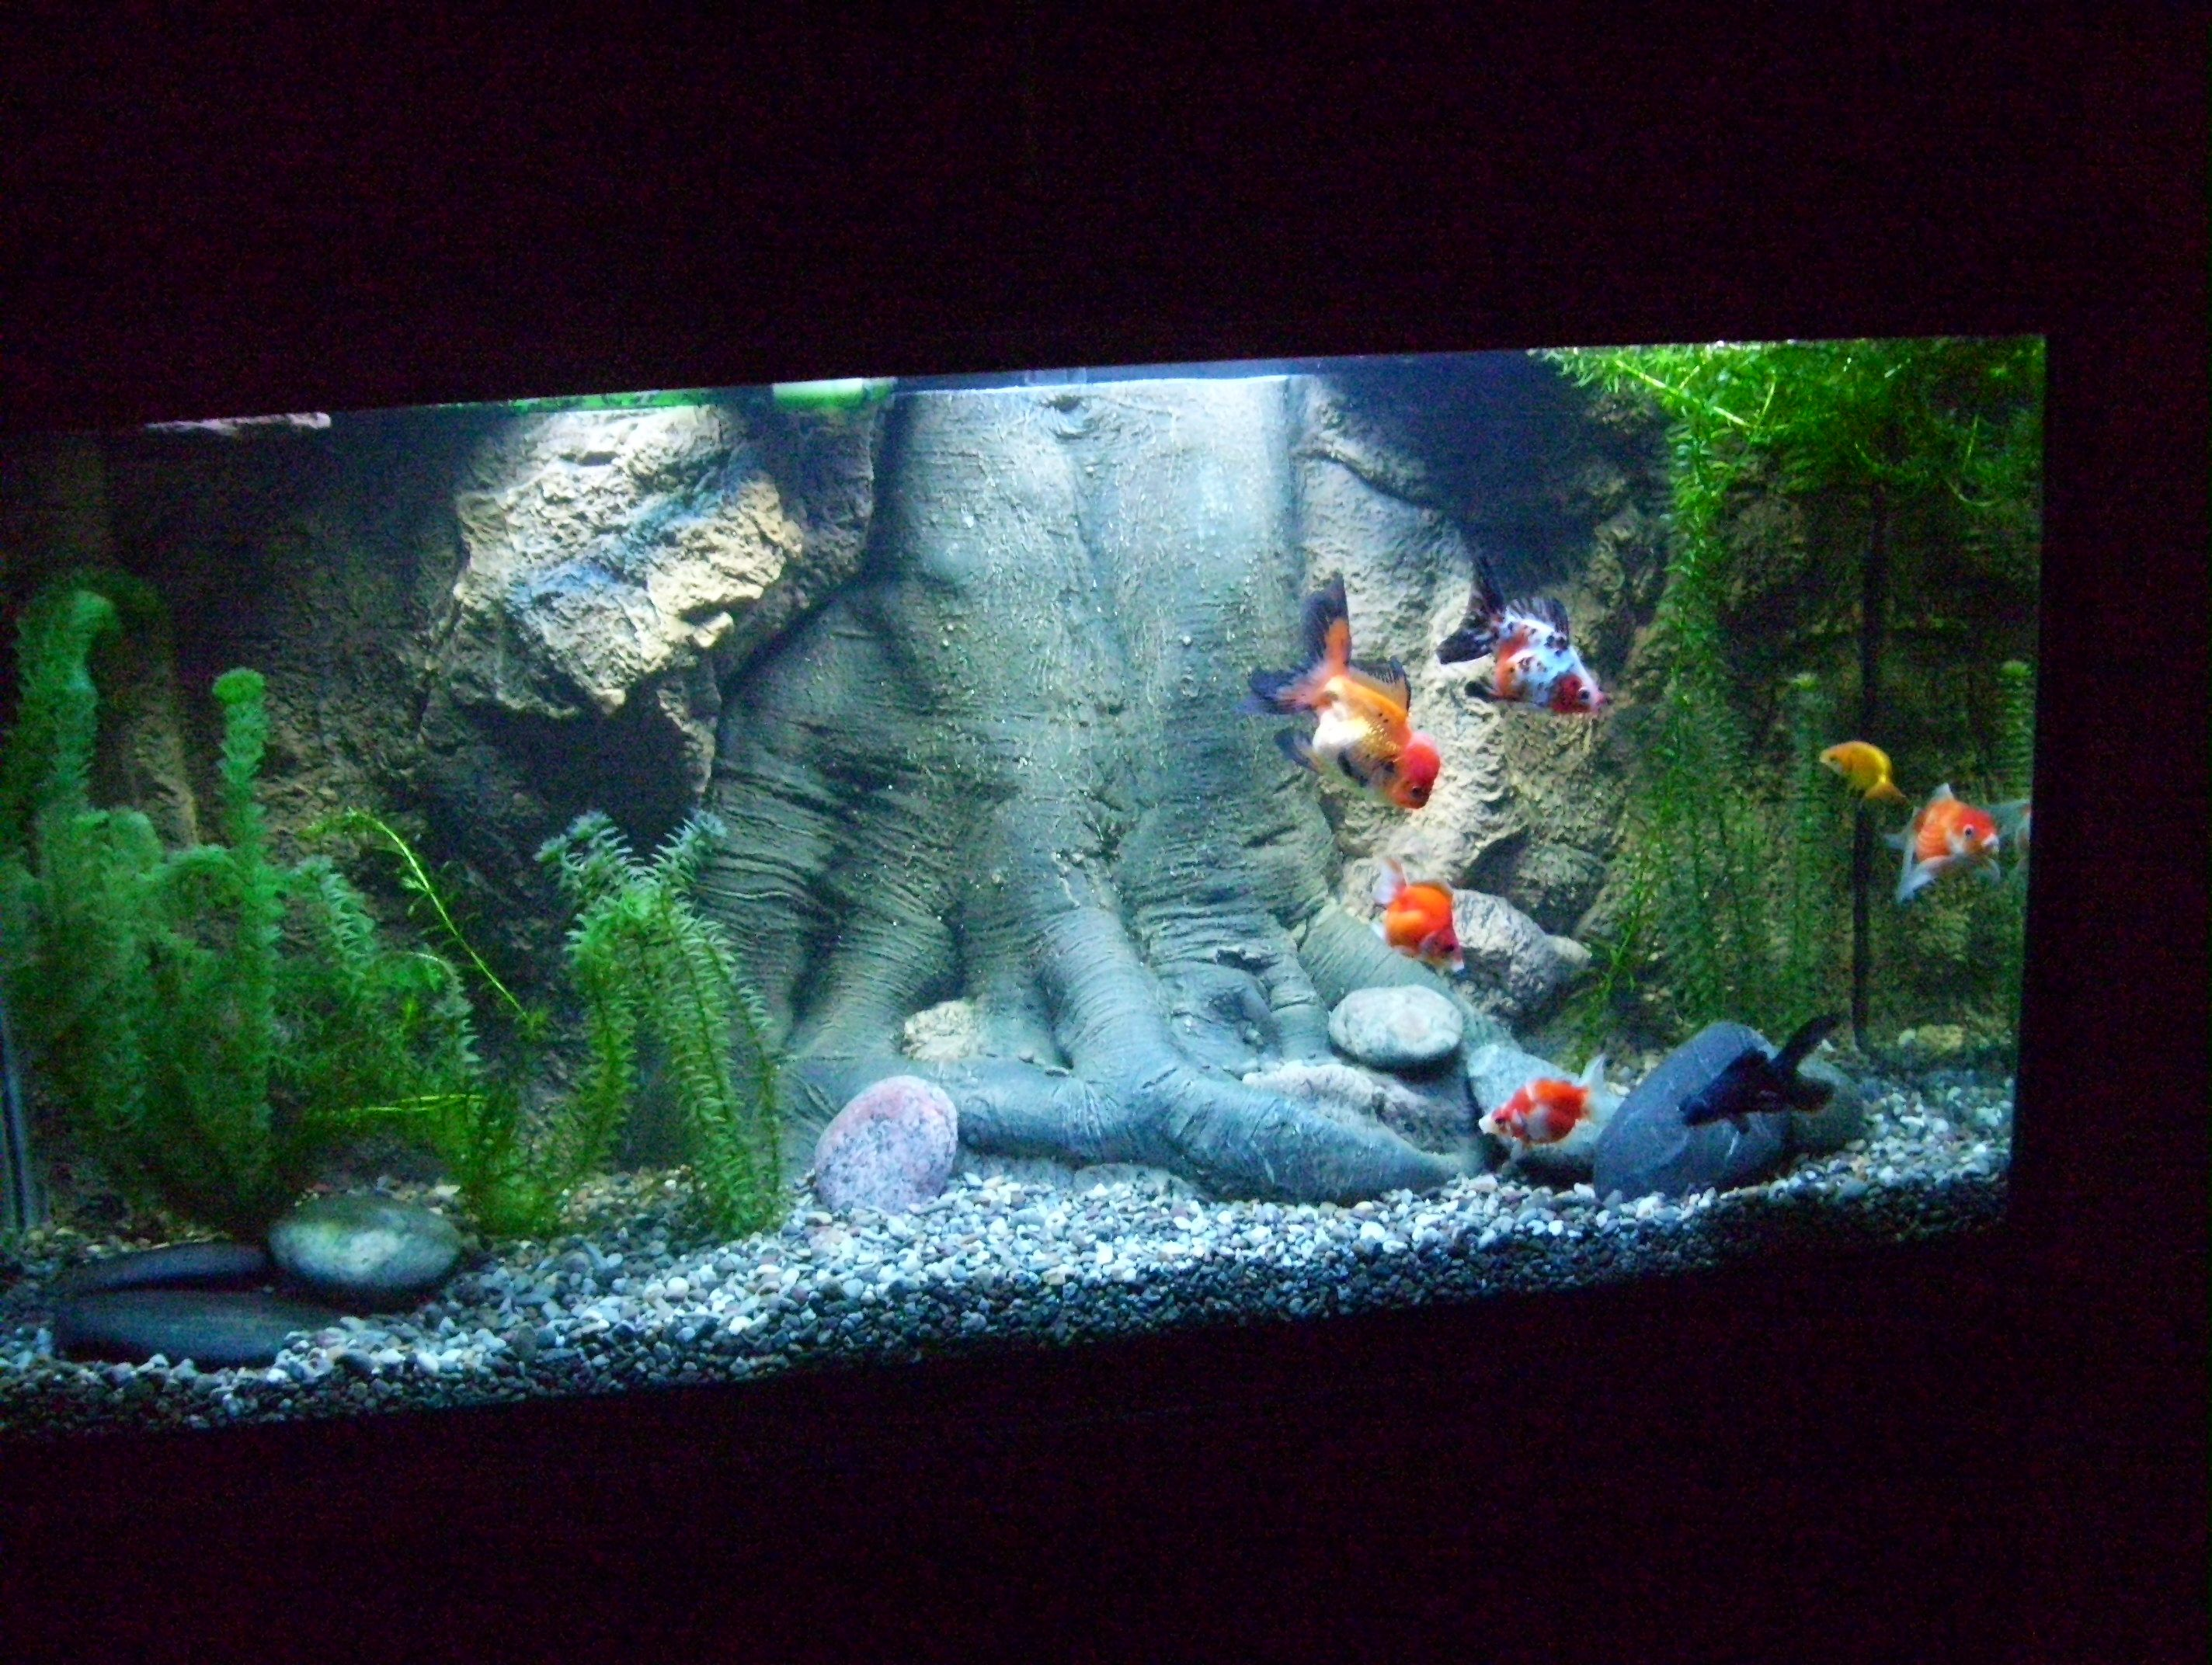 Fish in tank with goldfish - My Son S New 90 Gal Fancy Goldfish Tank